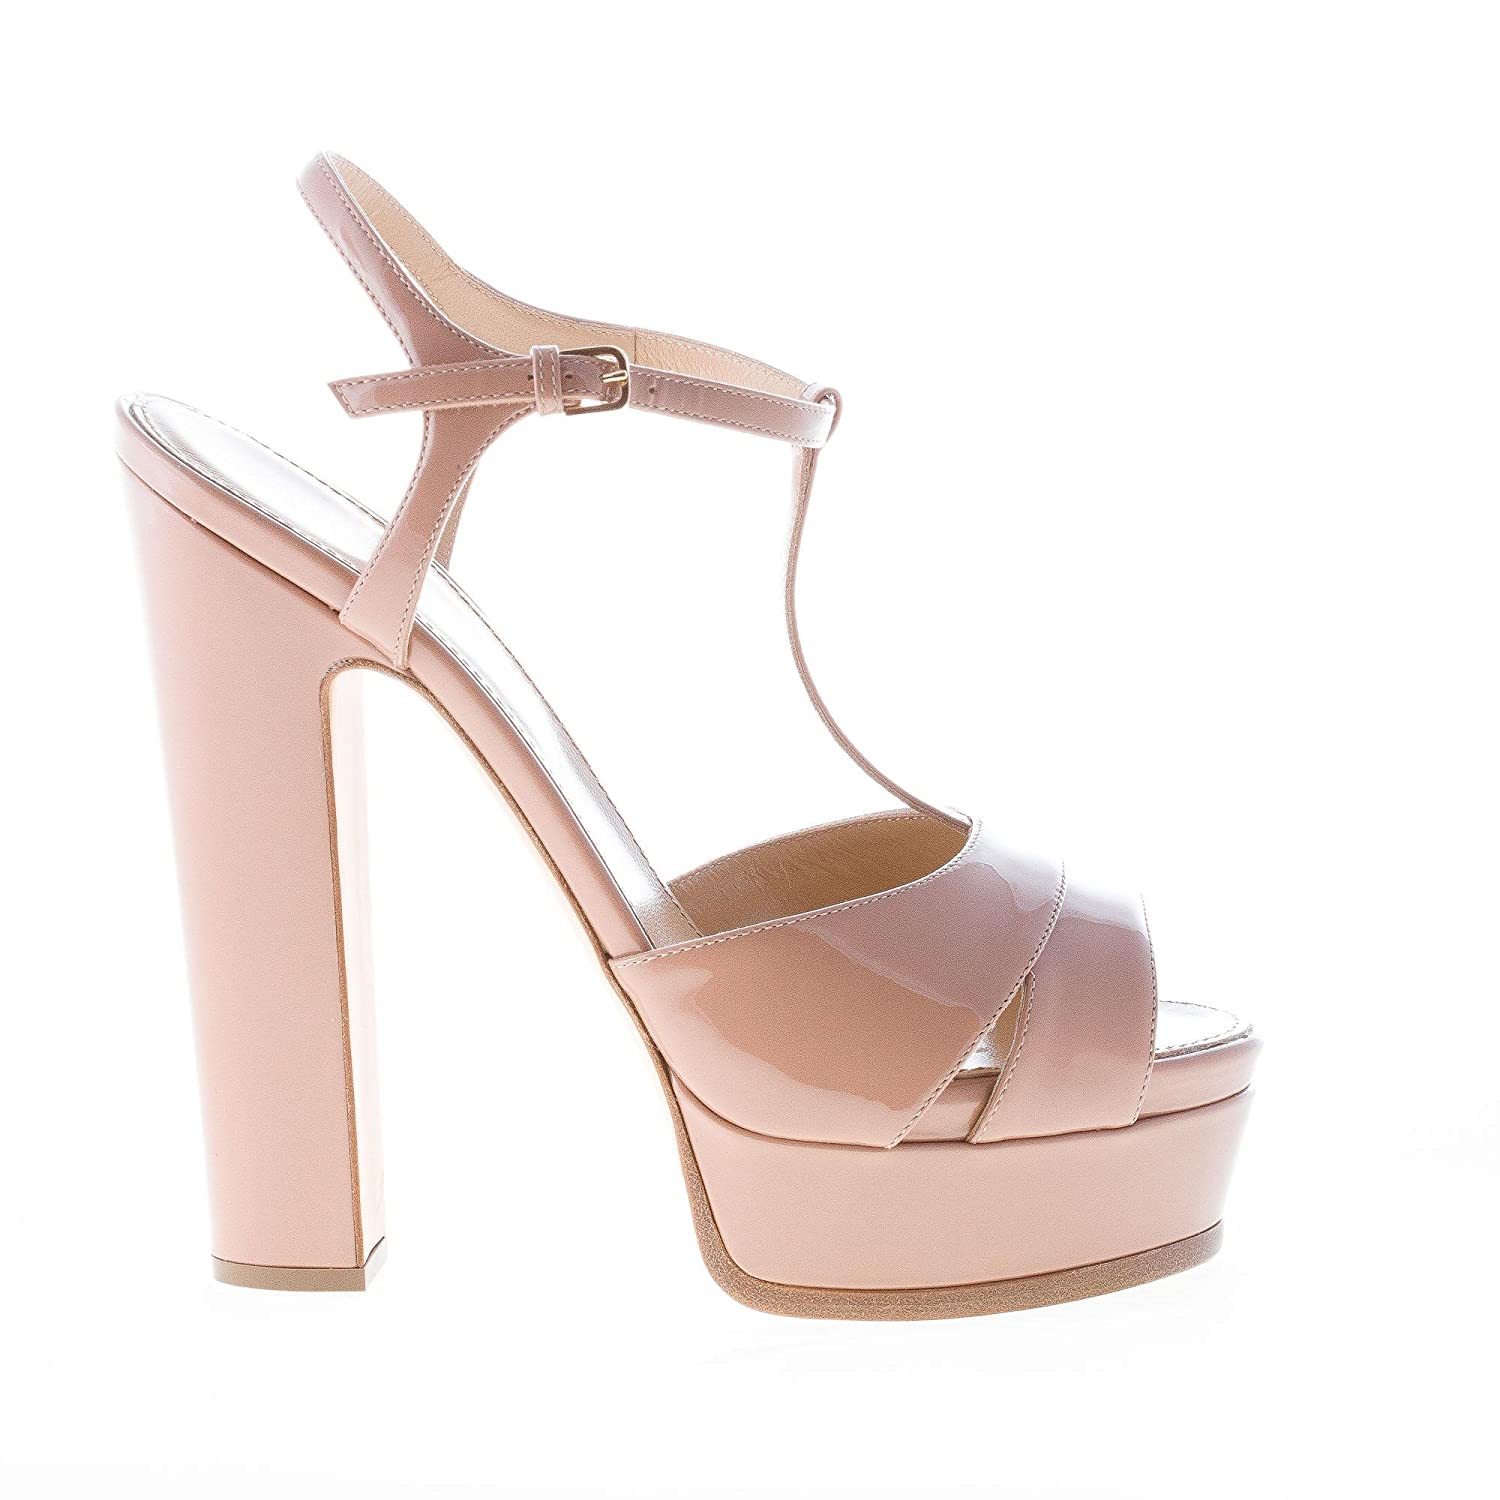 8f06875c440 Sergio Rossi Women Shoes Edwige Bright Skin Patent Leather Sandal with  Platform  Amazon.co.uk  Shoes   Bags